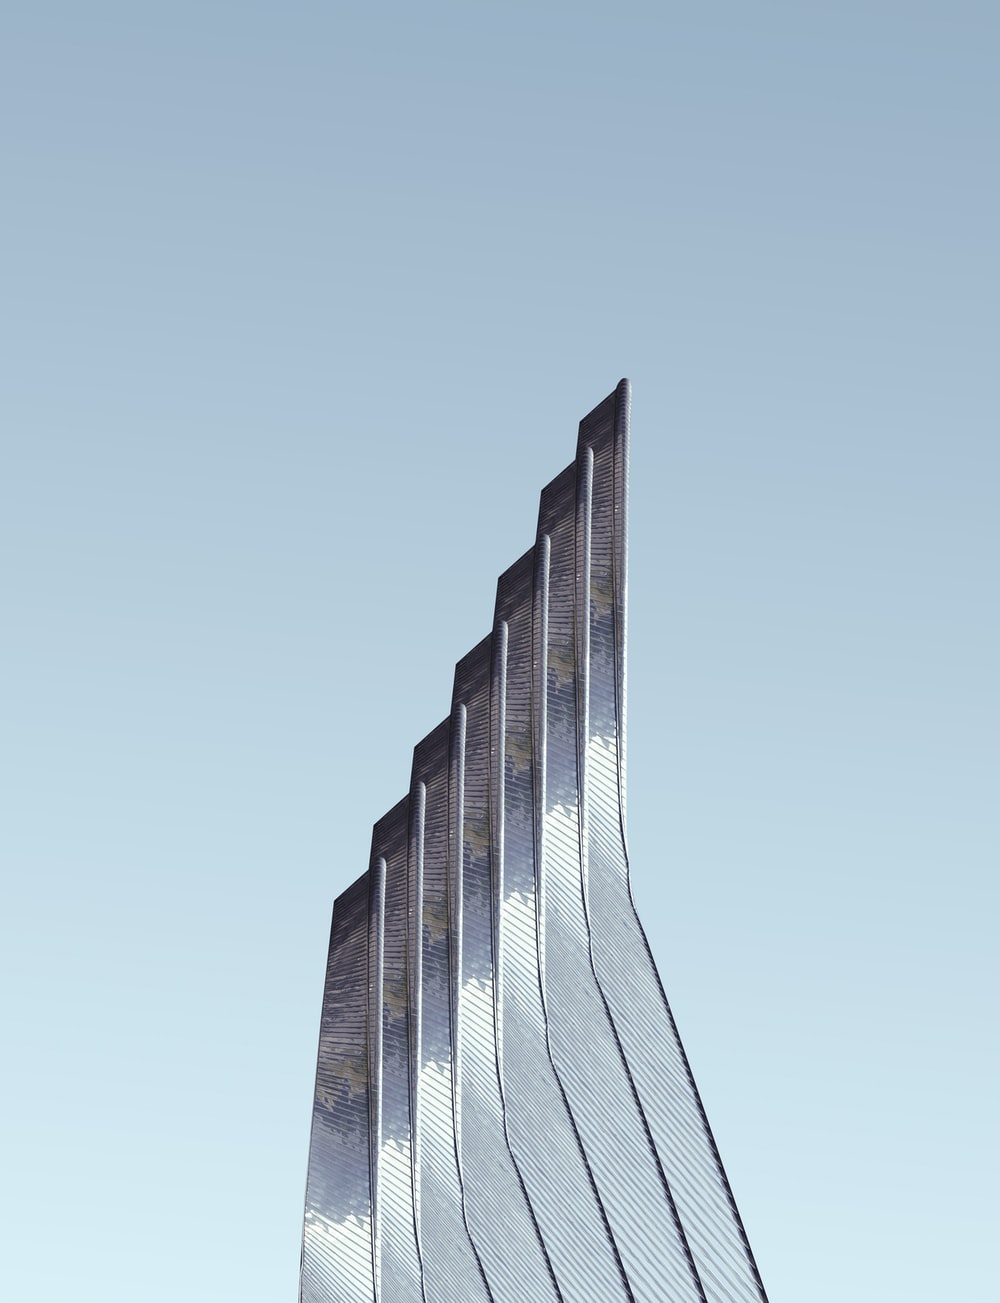 silver structural design building